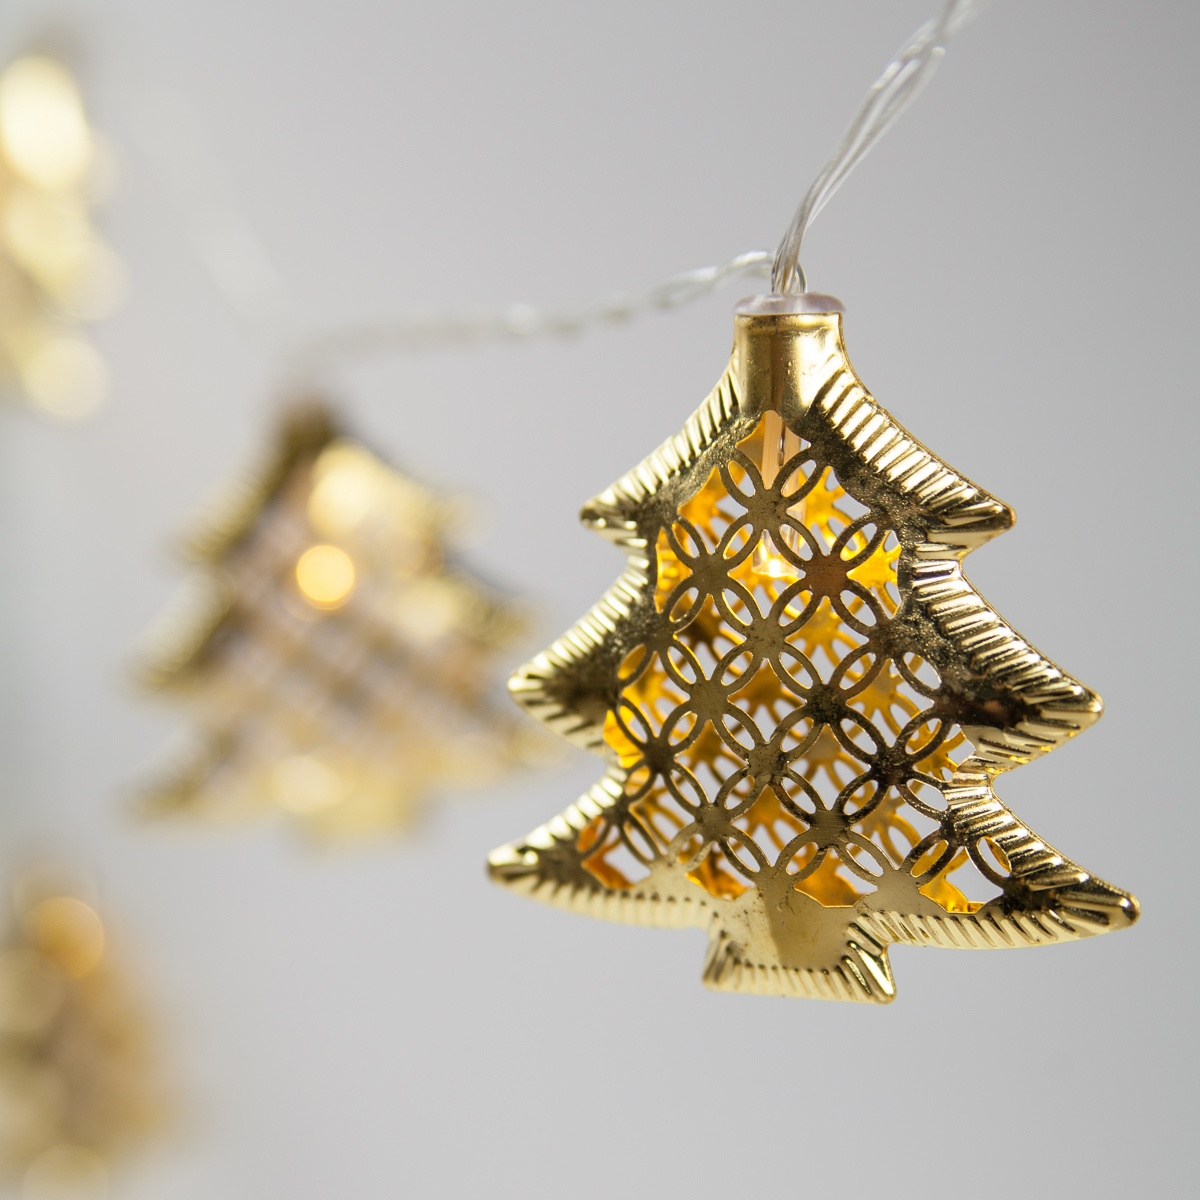 String Lights In Trees: Battery Operated LED Golden Metal